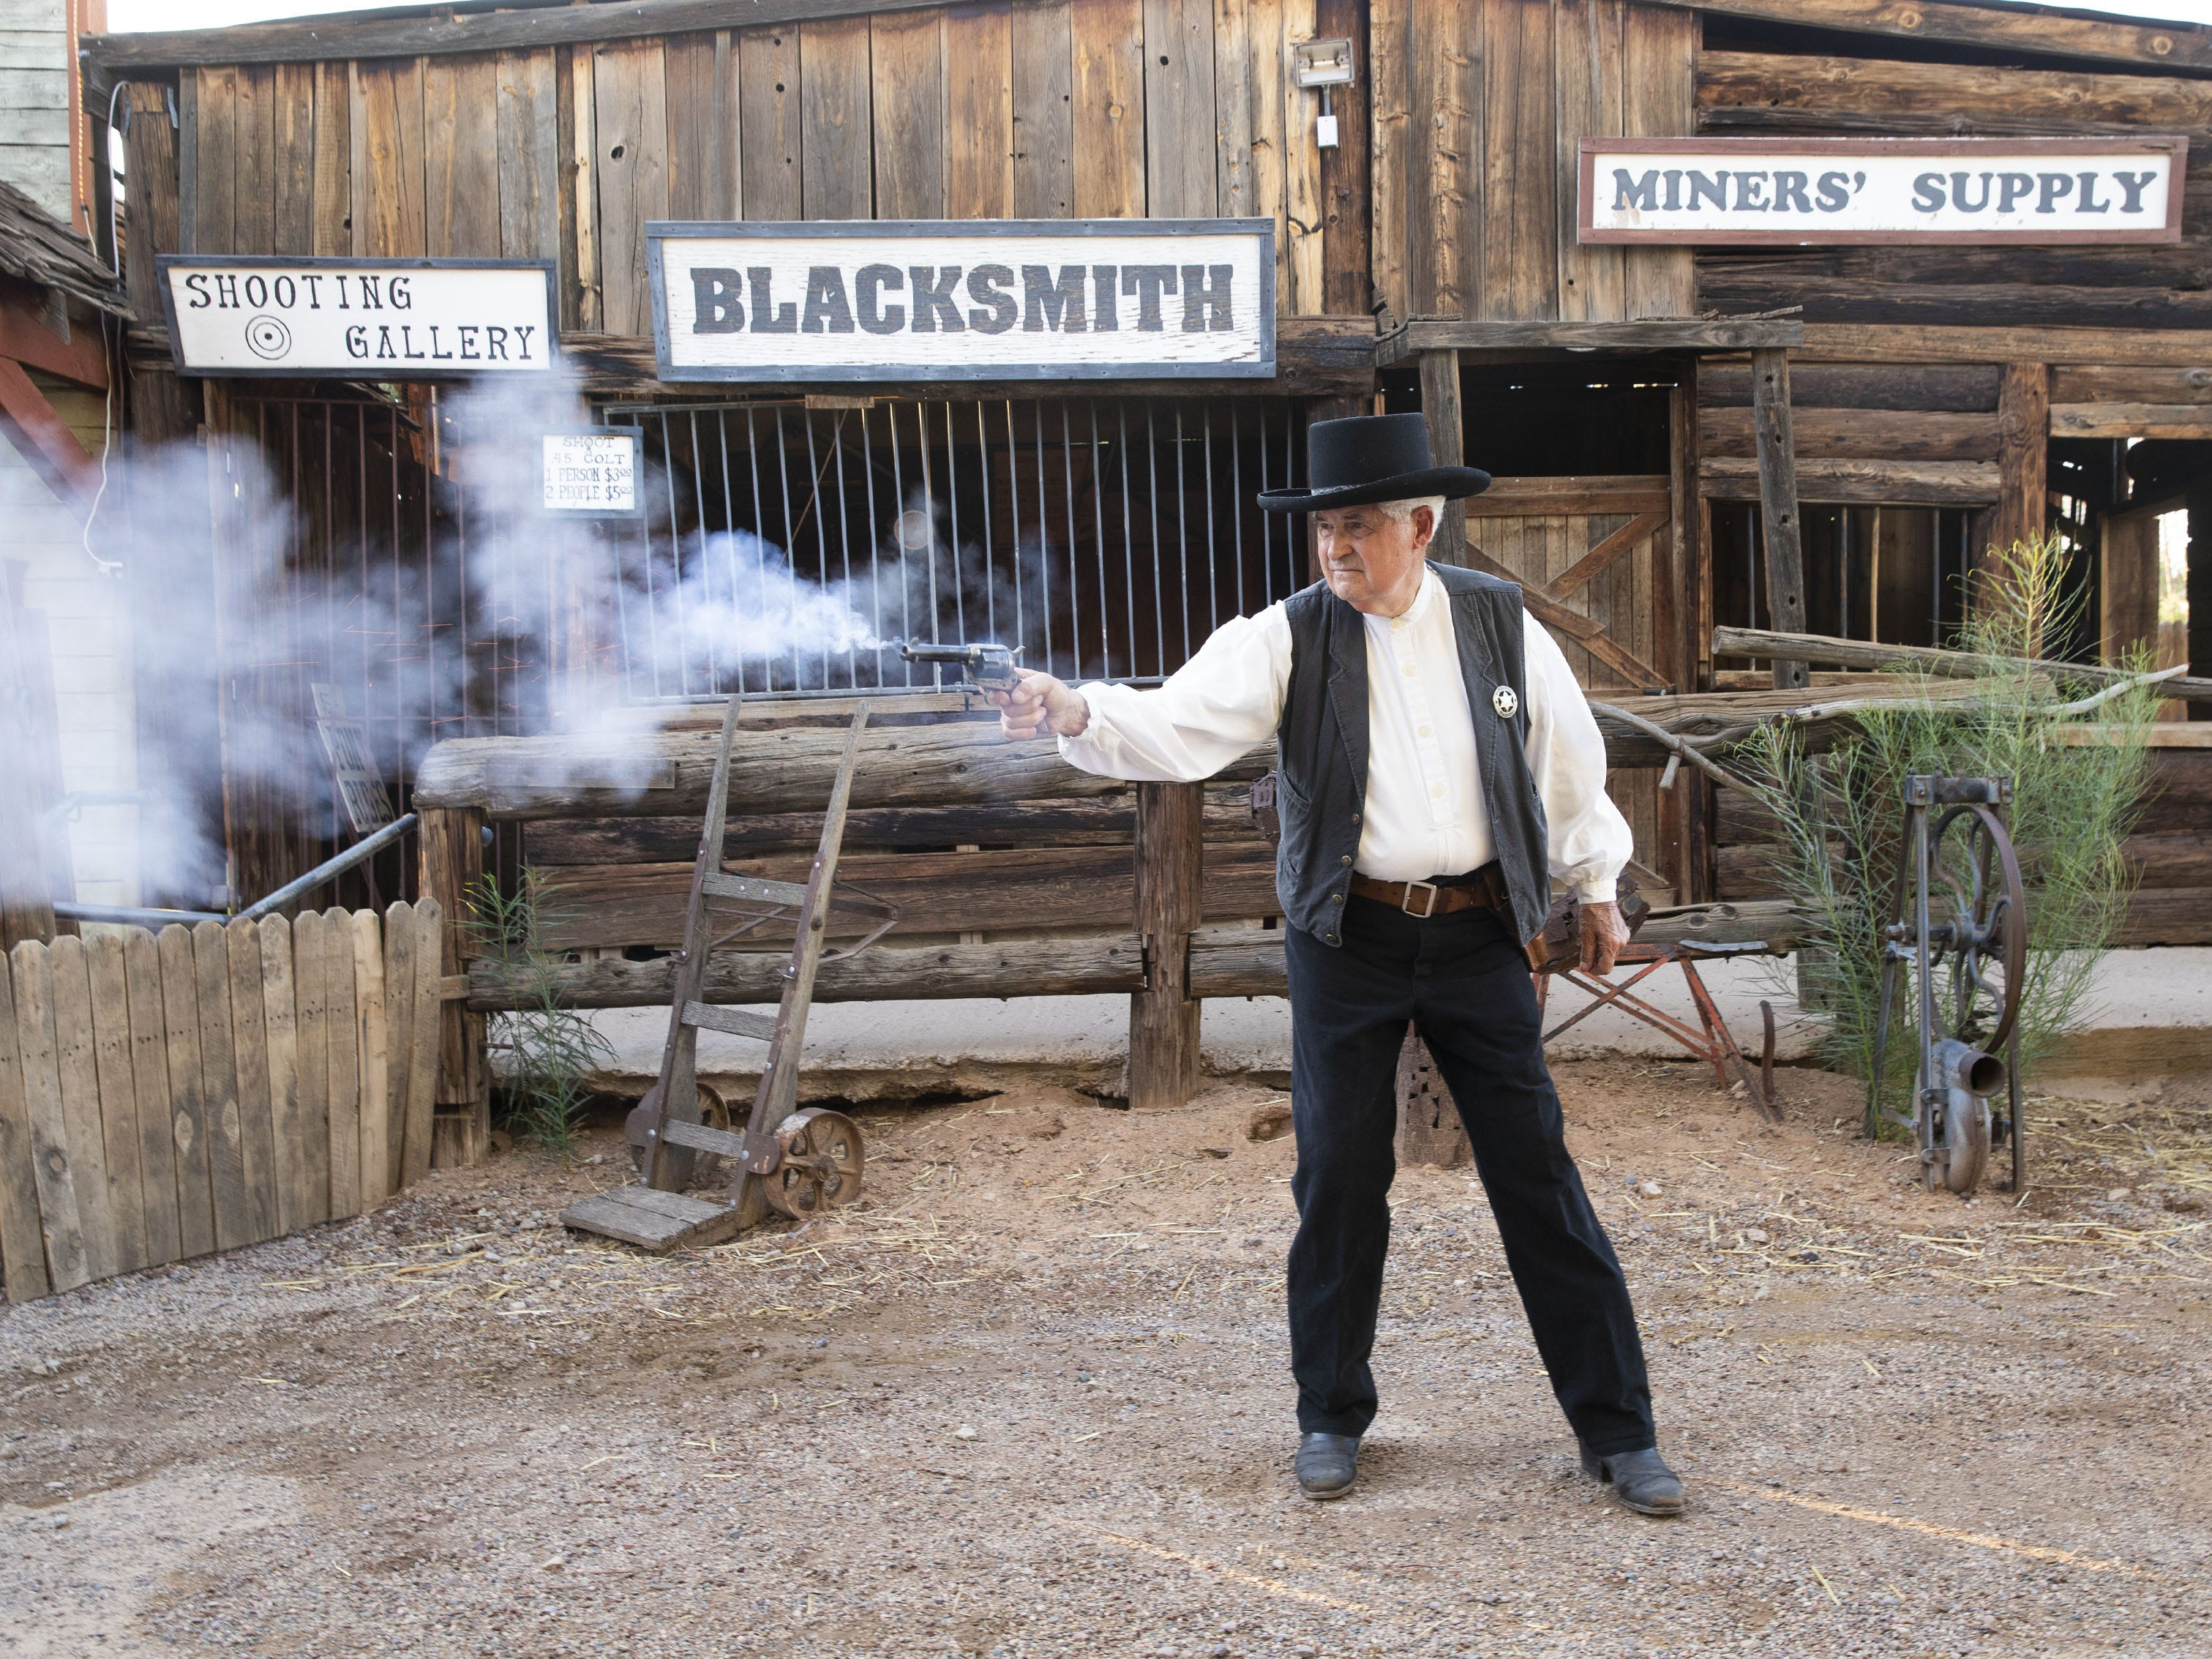 Longtime gunfighter Bob Charnes photographed at the Rockin R Ranch in Mesa, Ariz. August 6, 2018. Charnes, 80, has performed in reenactment for more than 60 years.